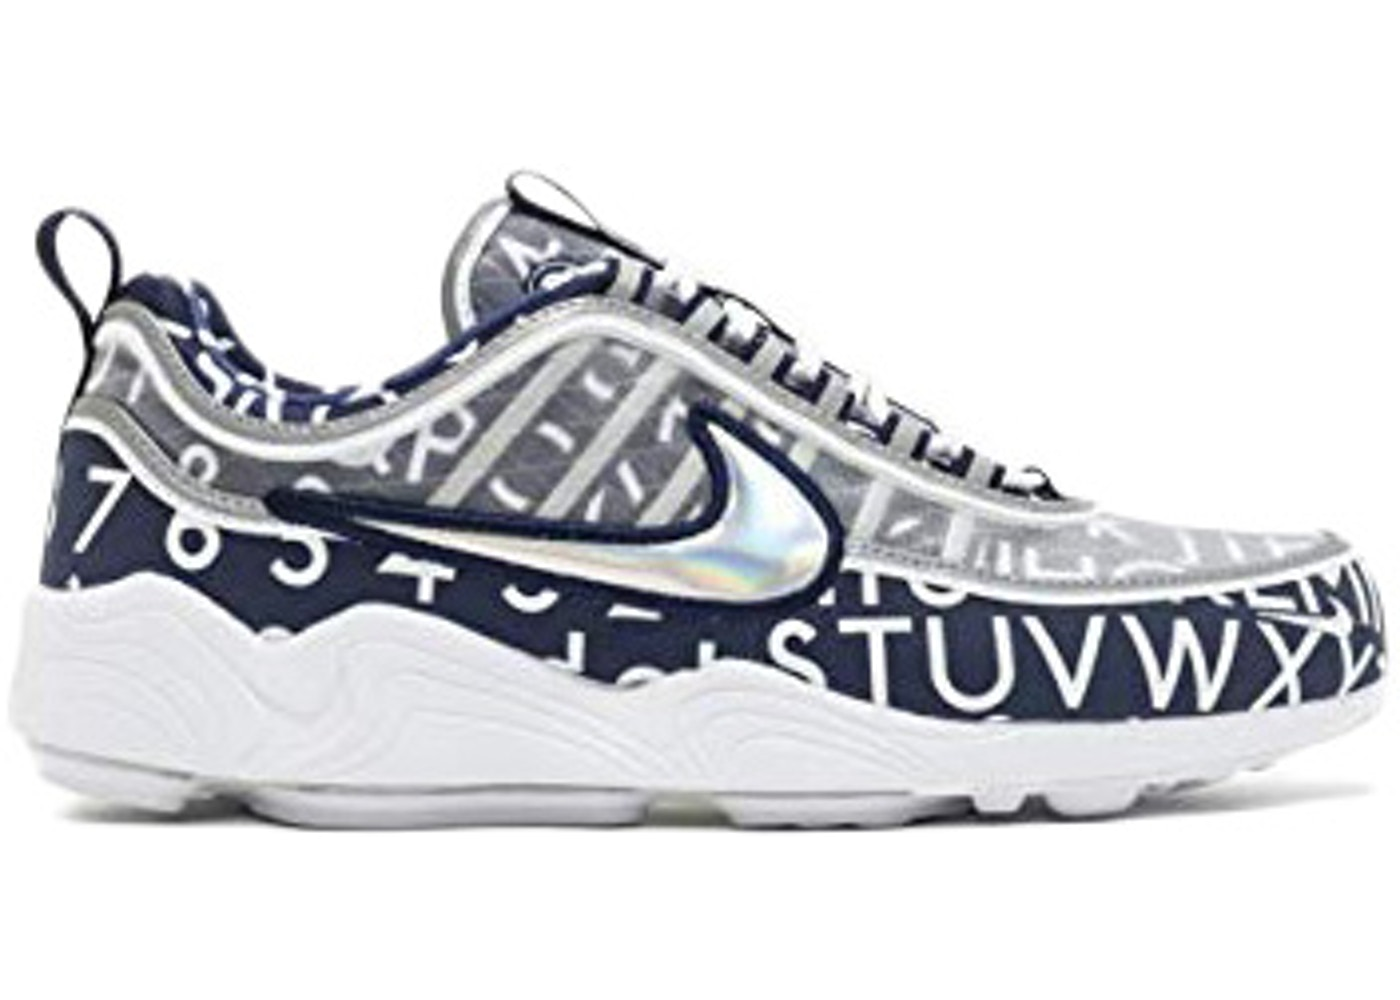 ナイキ NIKE エア ズーム スニーカー 【 AIR ZOOM SPIRIDON ROUNDEL BINARY BLUE MULTICOLOR 】 メンズ